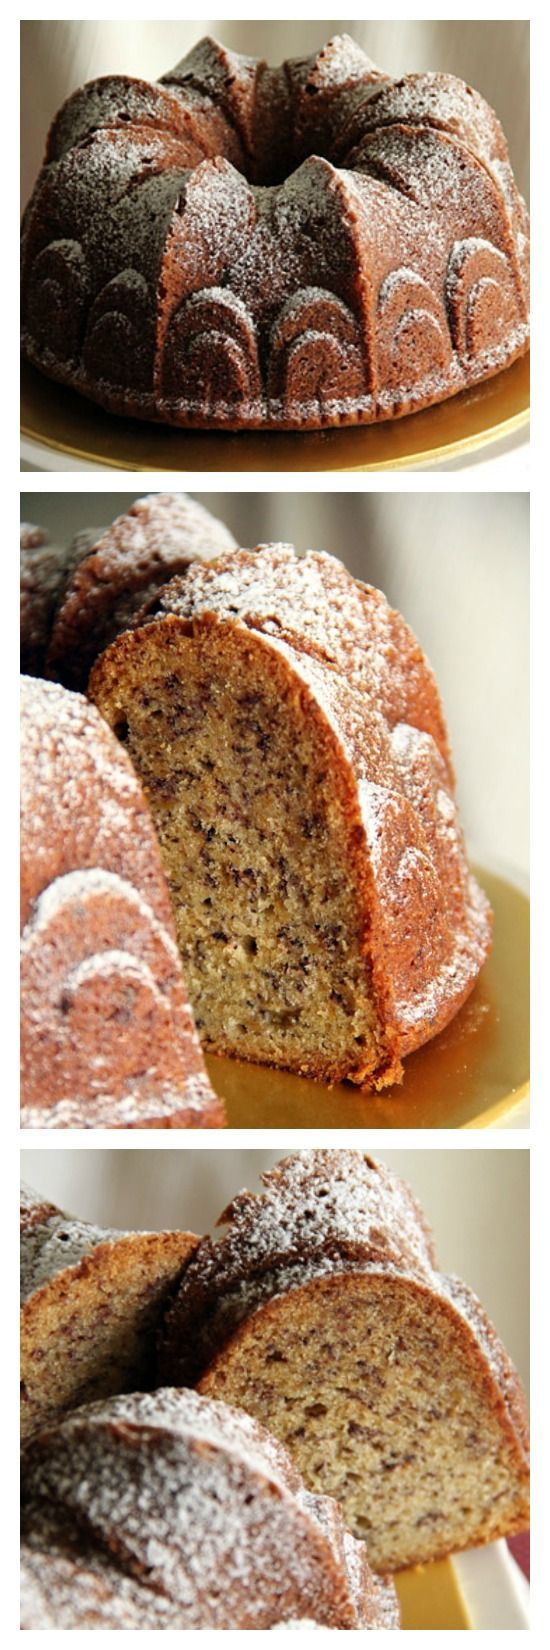 Best Banana Bundt Cake Recipe. Moist and buttery with the sweetest smell of bananas. | rasamalaysia.com